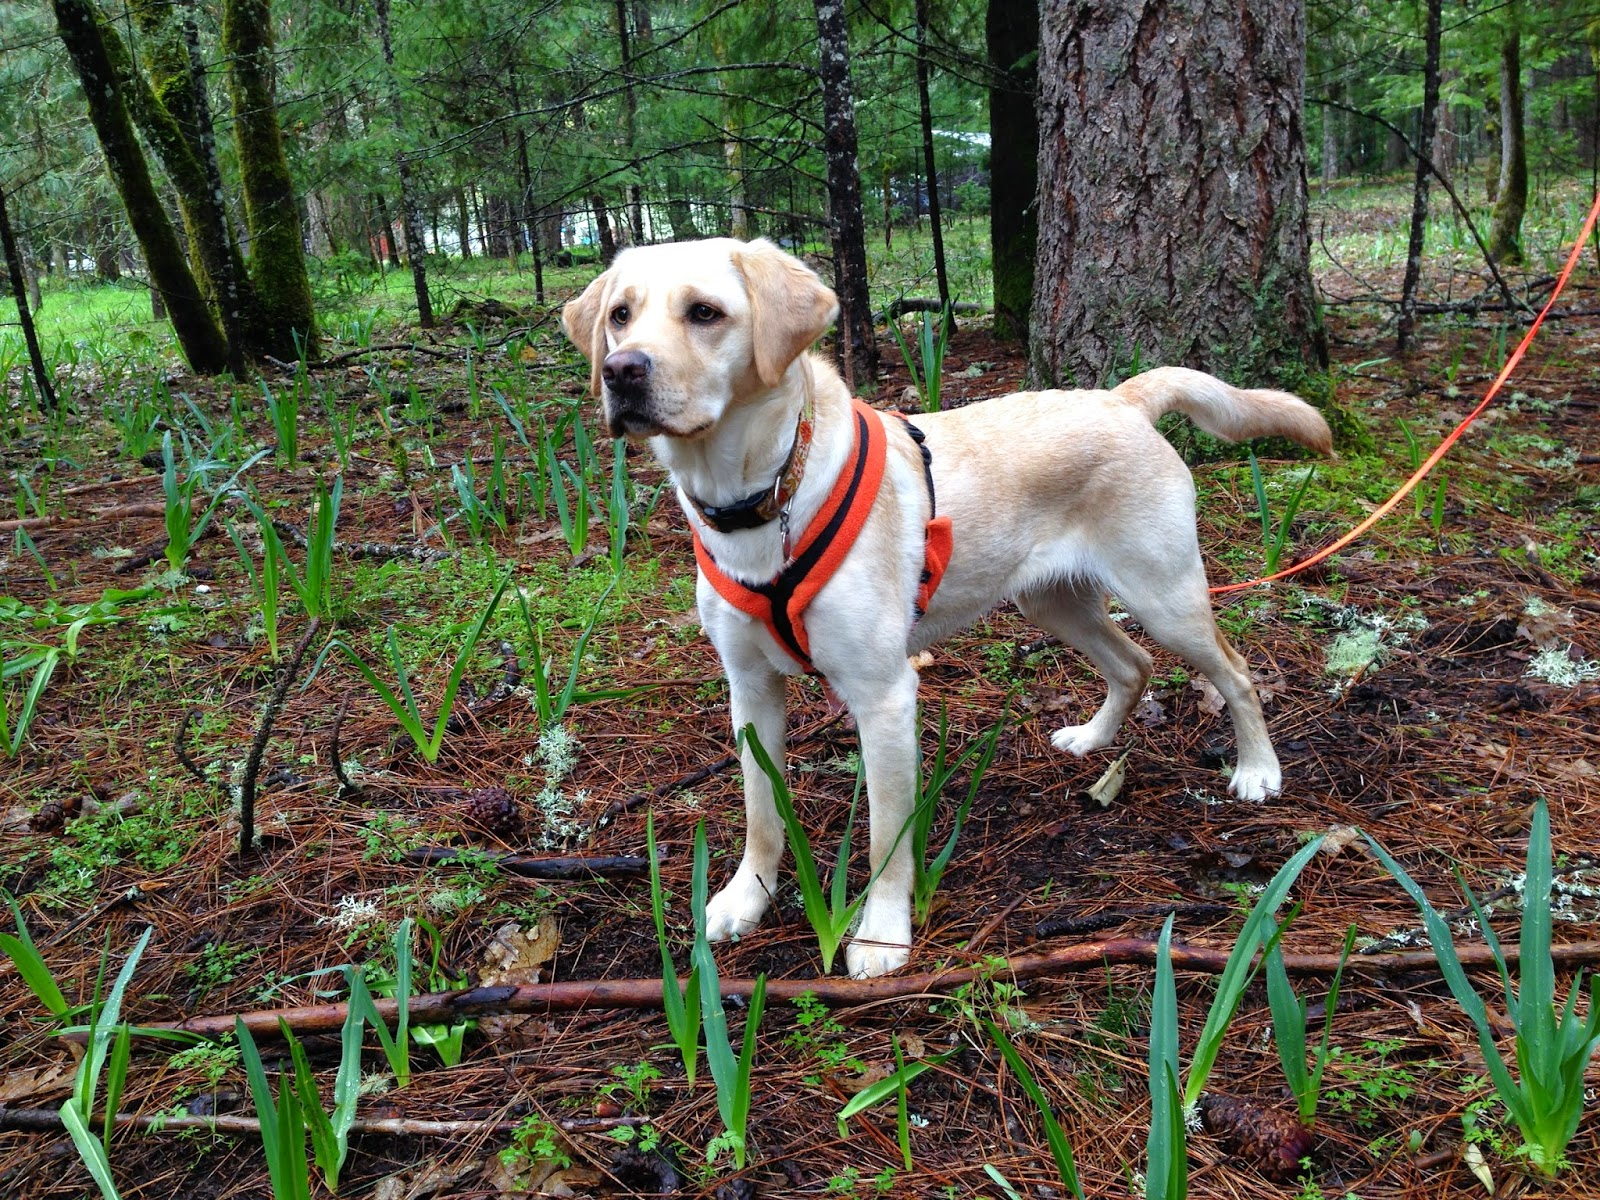 Gucci (yellow Lab) stands very attentively with her ears up and orange harness on in the forest.